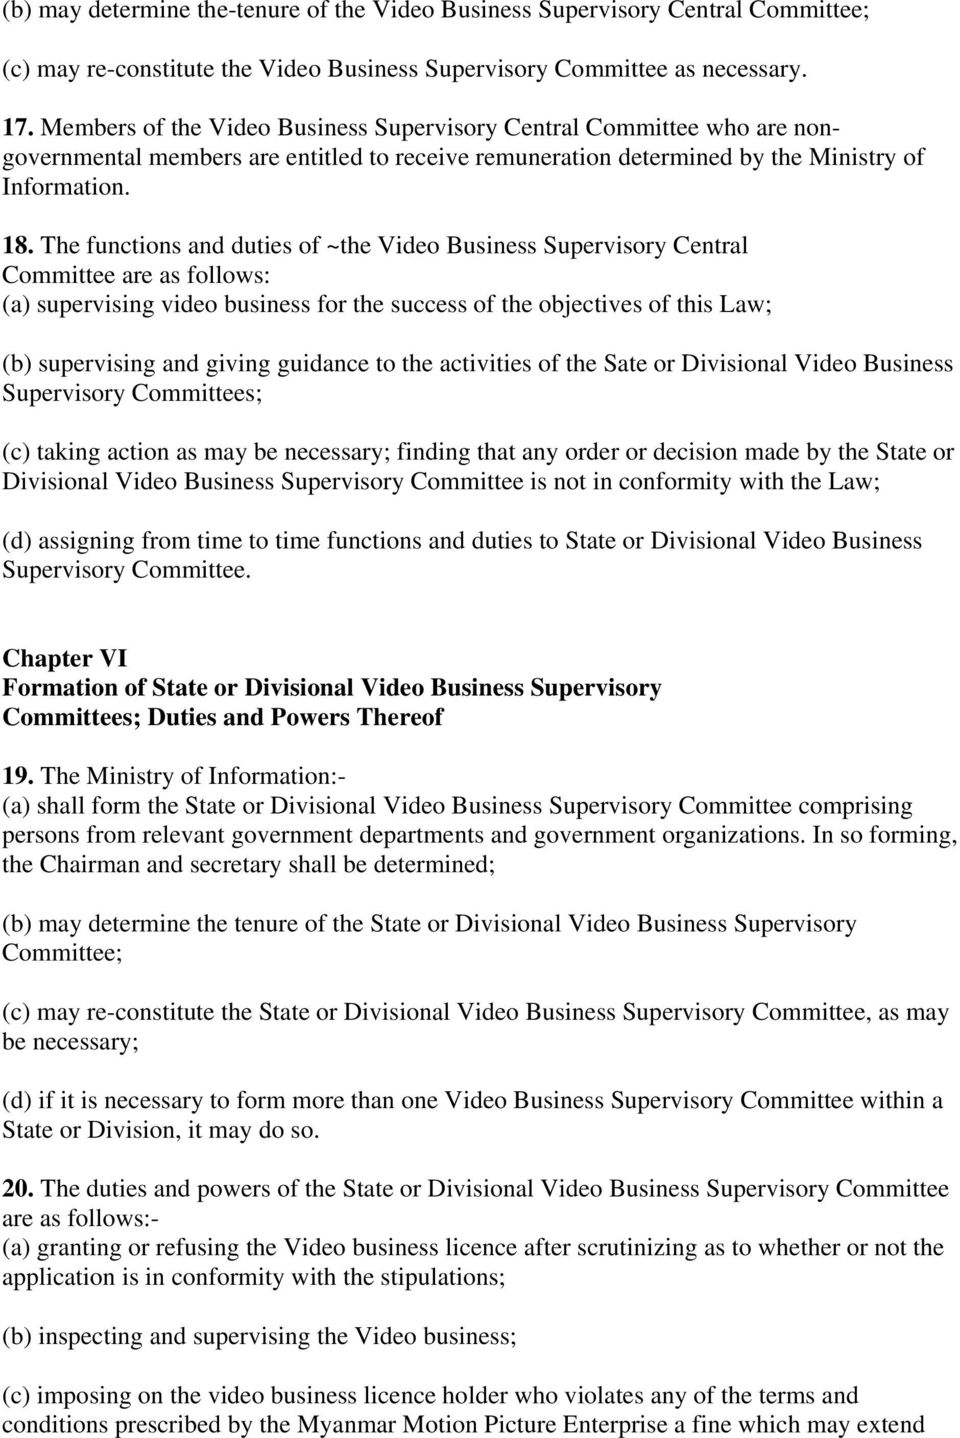 The functions and duties of ~the Video Business Supervisory Central Committee are as follows: (a) supervising video business for the success of the objectives of this Law; (b) supervising and giving